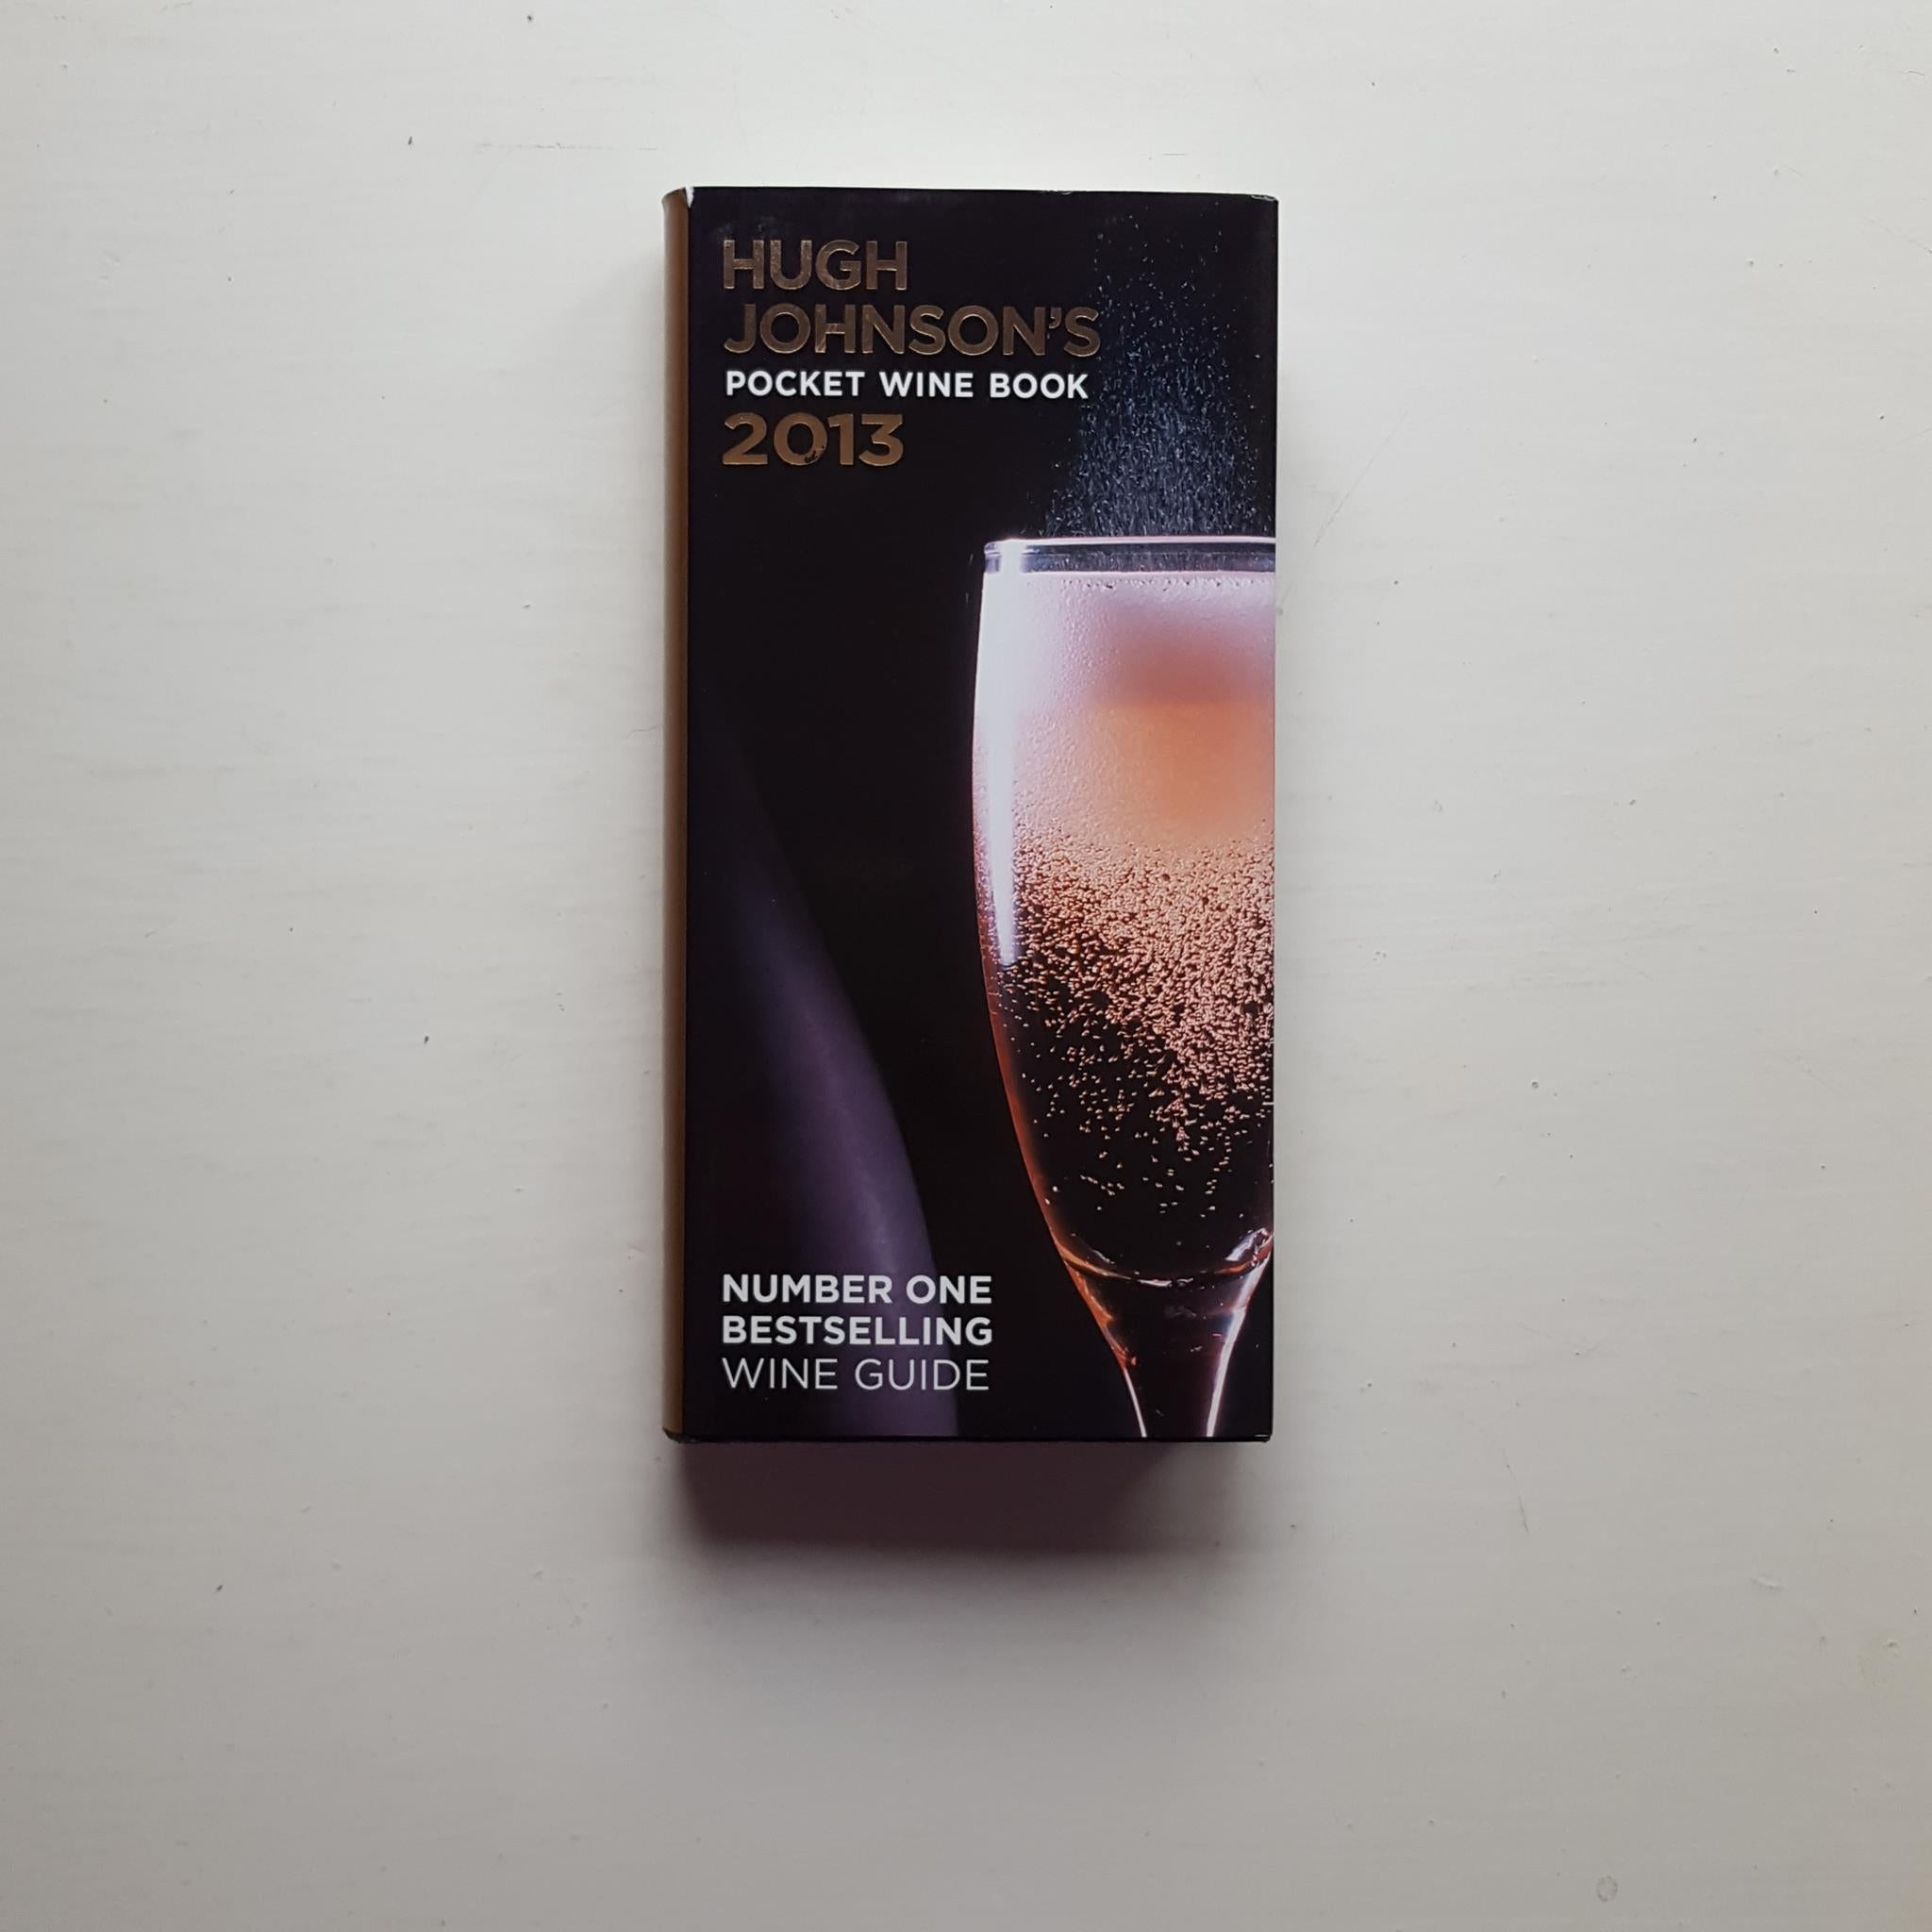 Hugh Johnson's Pocket Wine Book 2013 by Hugh Johnson